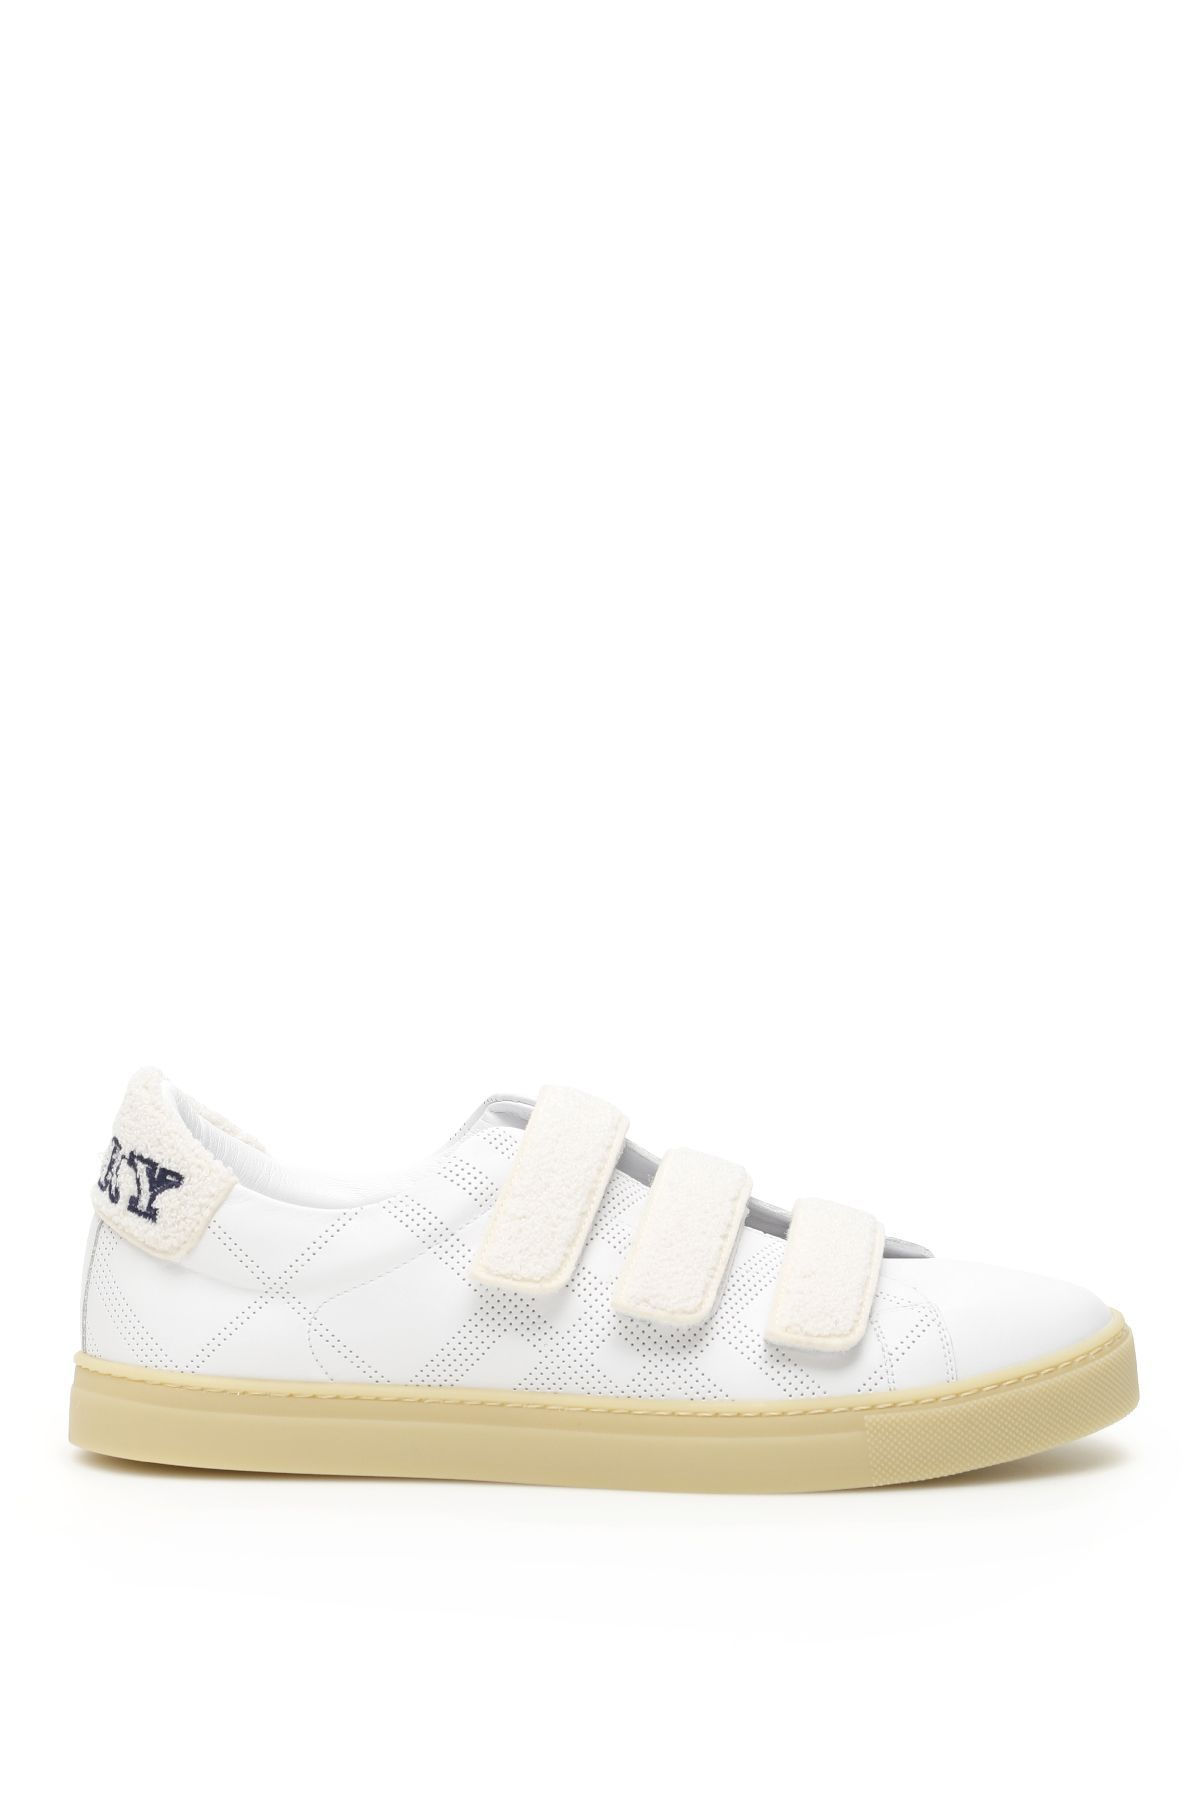 Perforated leather, Sneakers